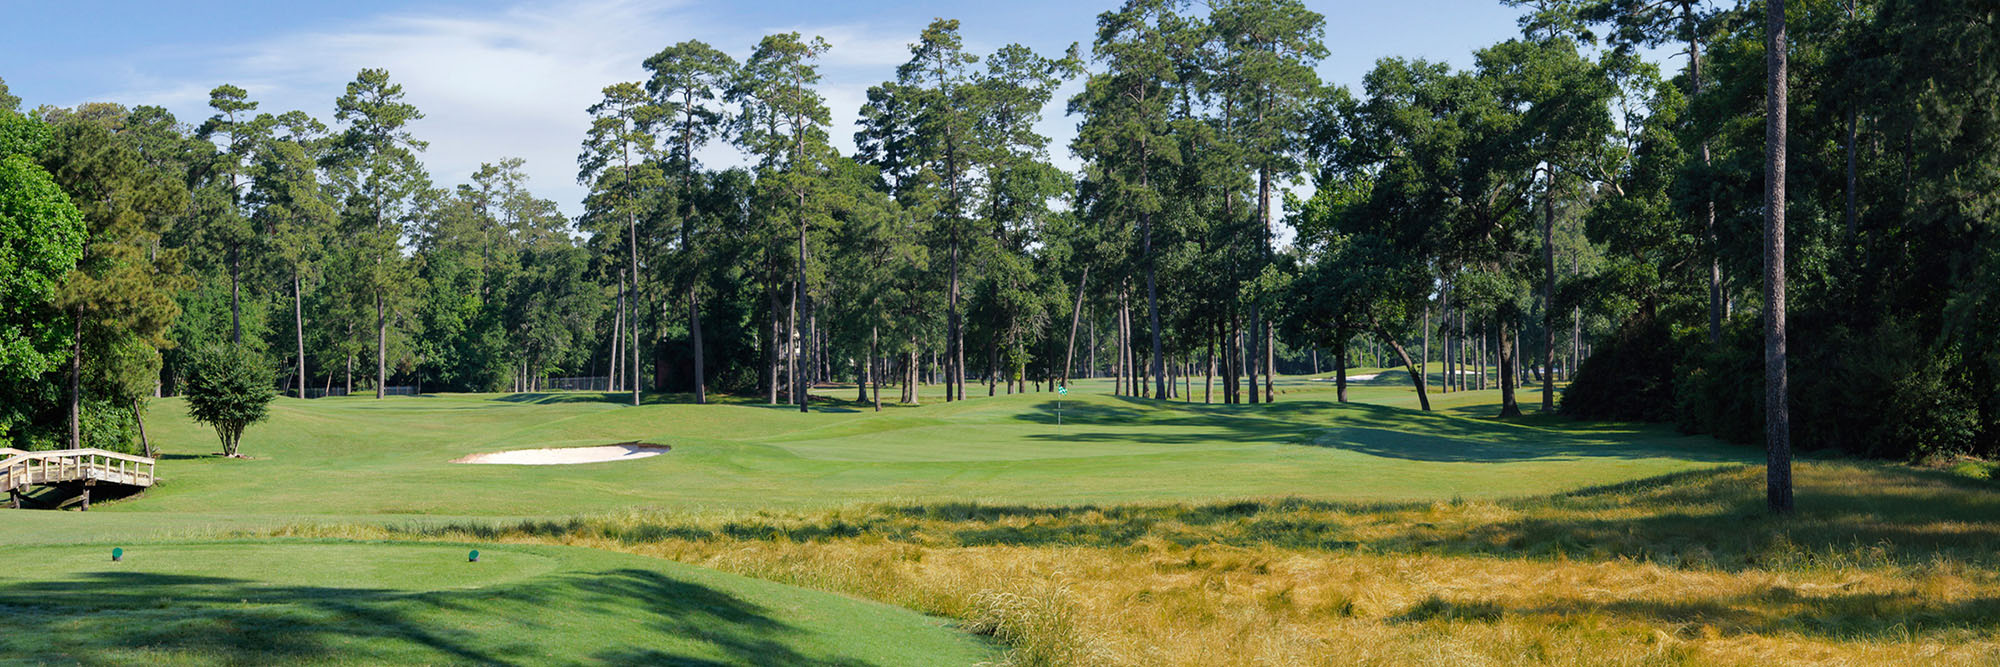 Golf Course Image - Woodlands-Oak Course No. 14